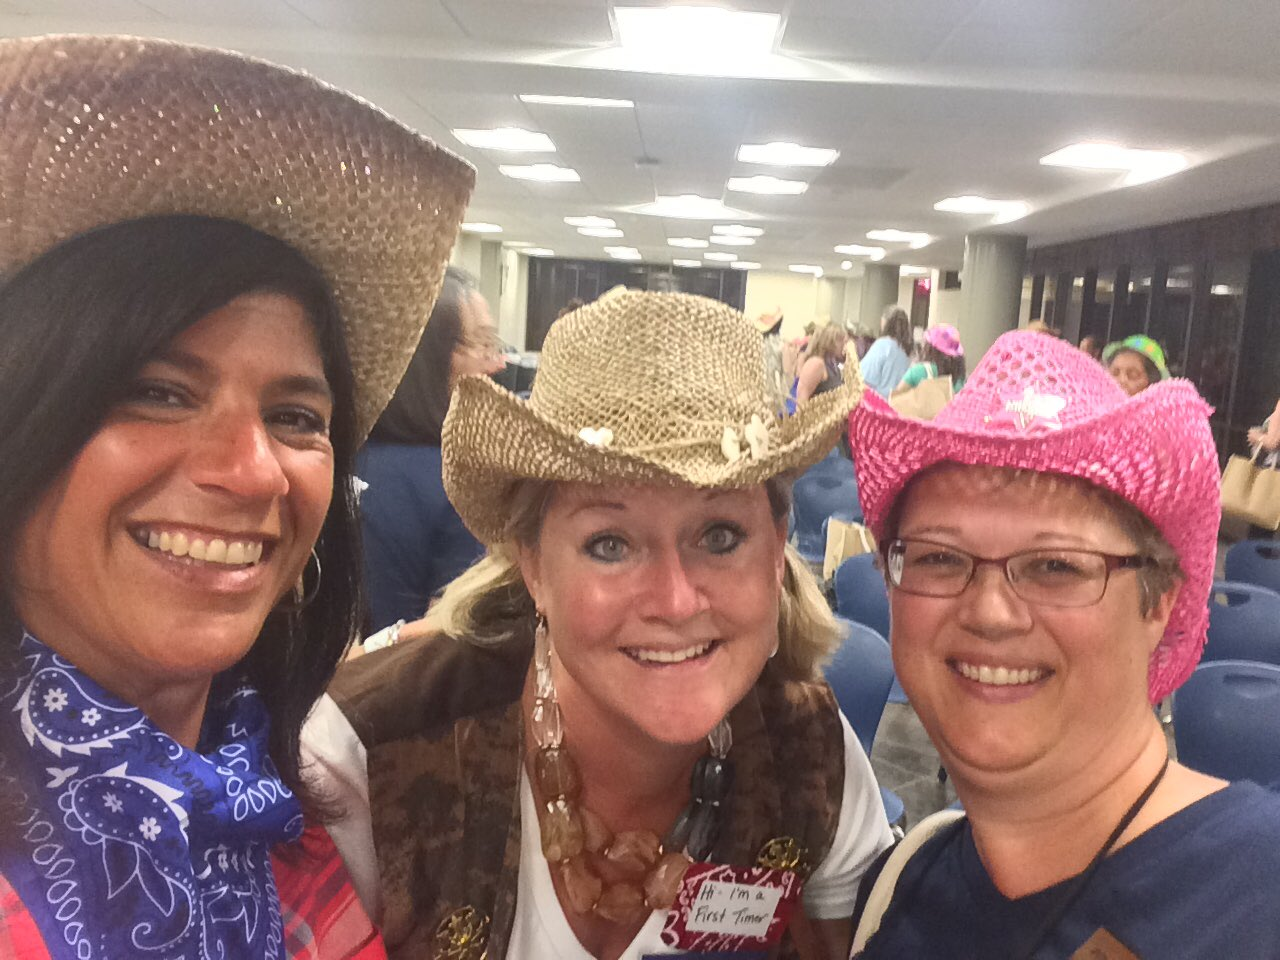 PTA on the range! @NYSPTA @kbelokopitsky @ames_cindy #NYSPTASLC16 #PTAcowgirls https://t.co/Q05DqKeRgD